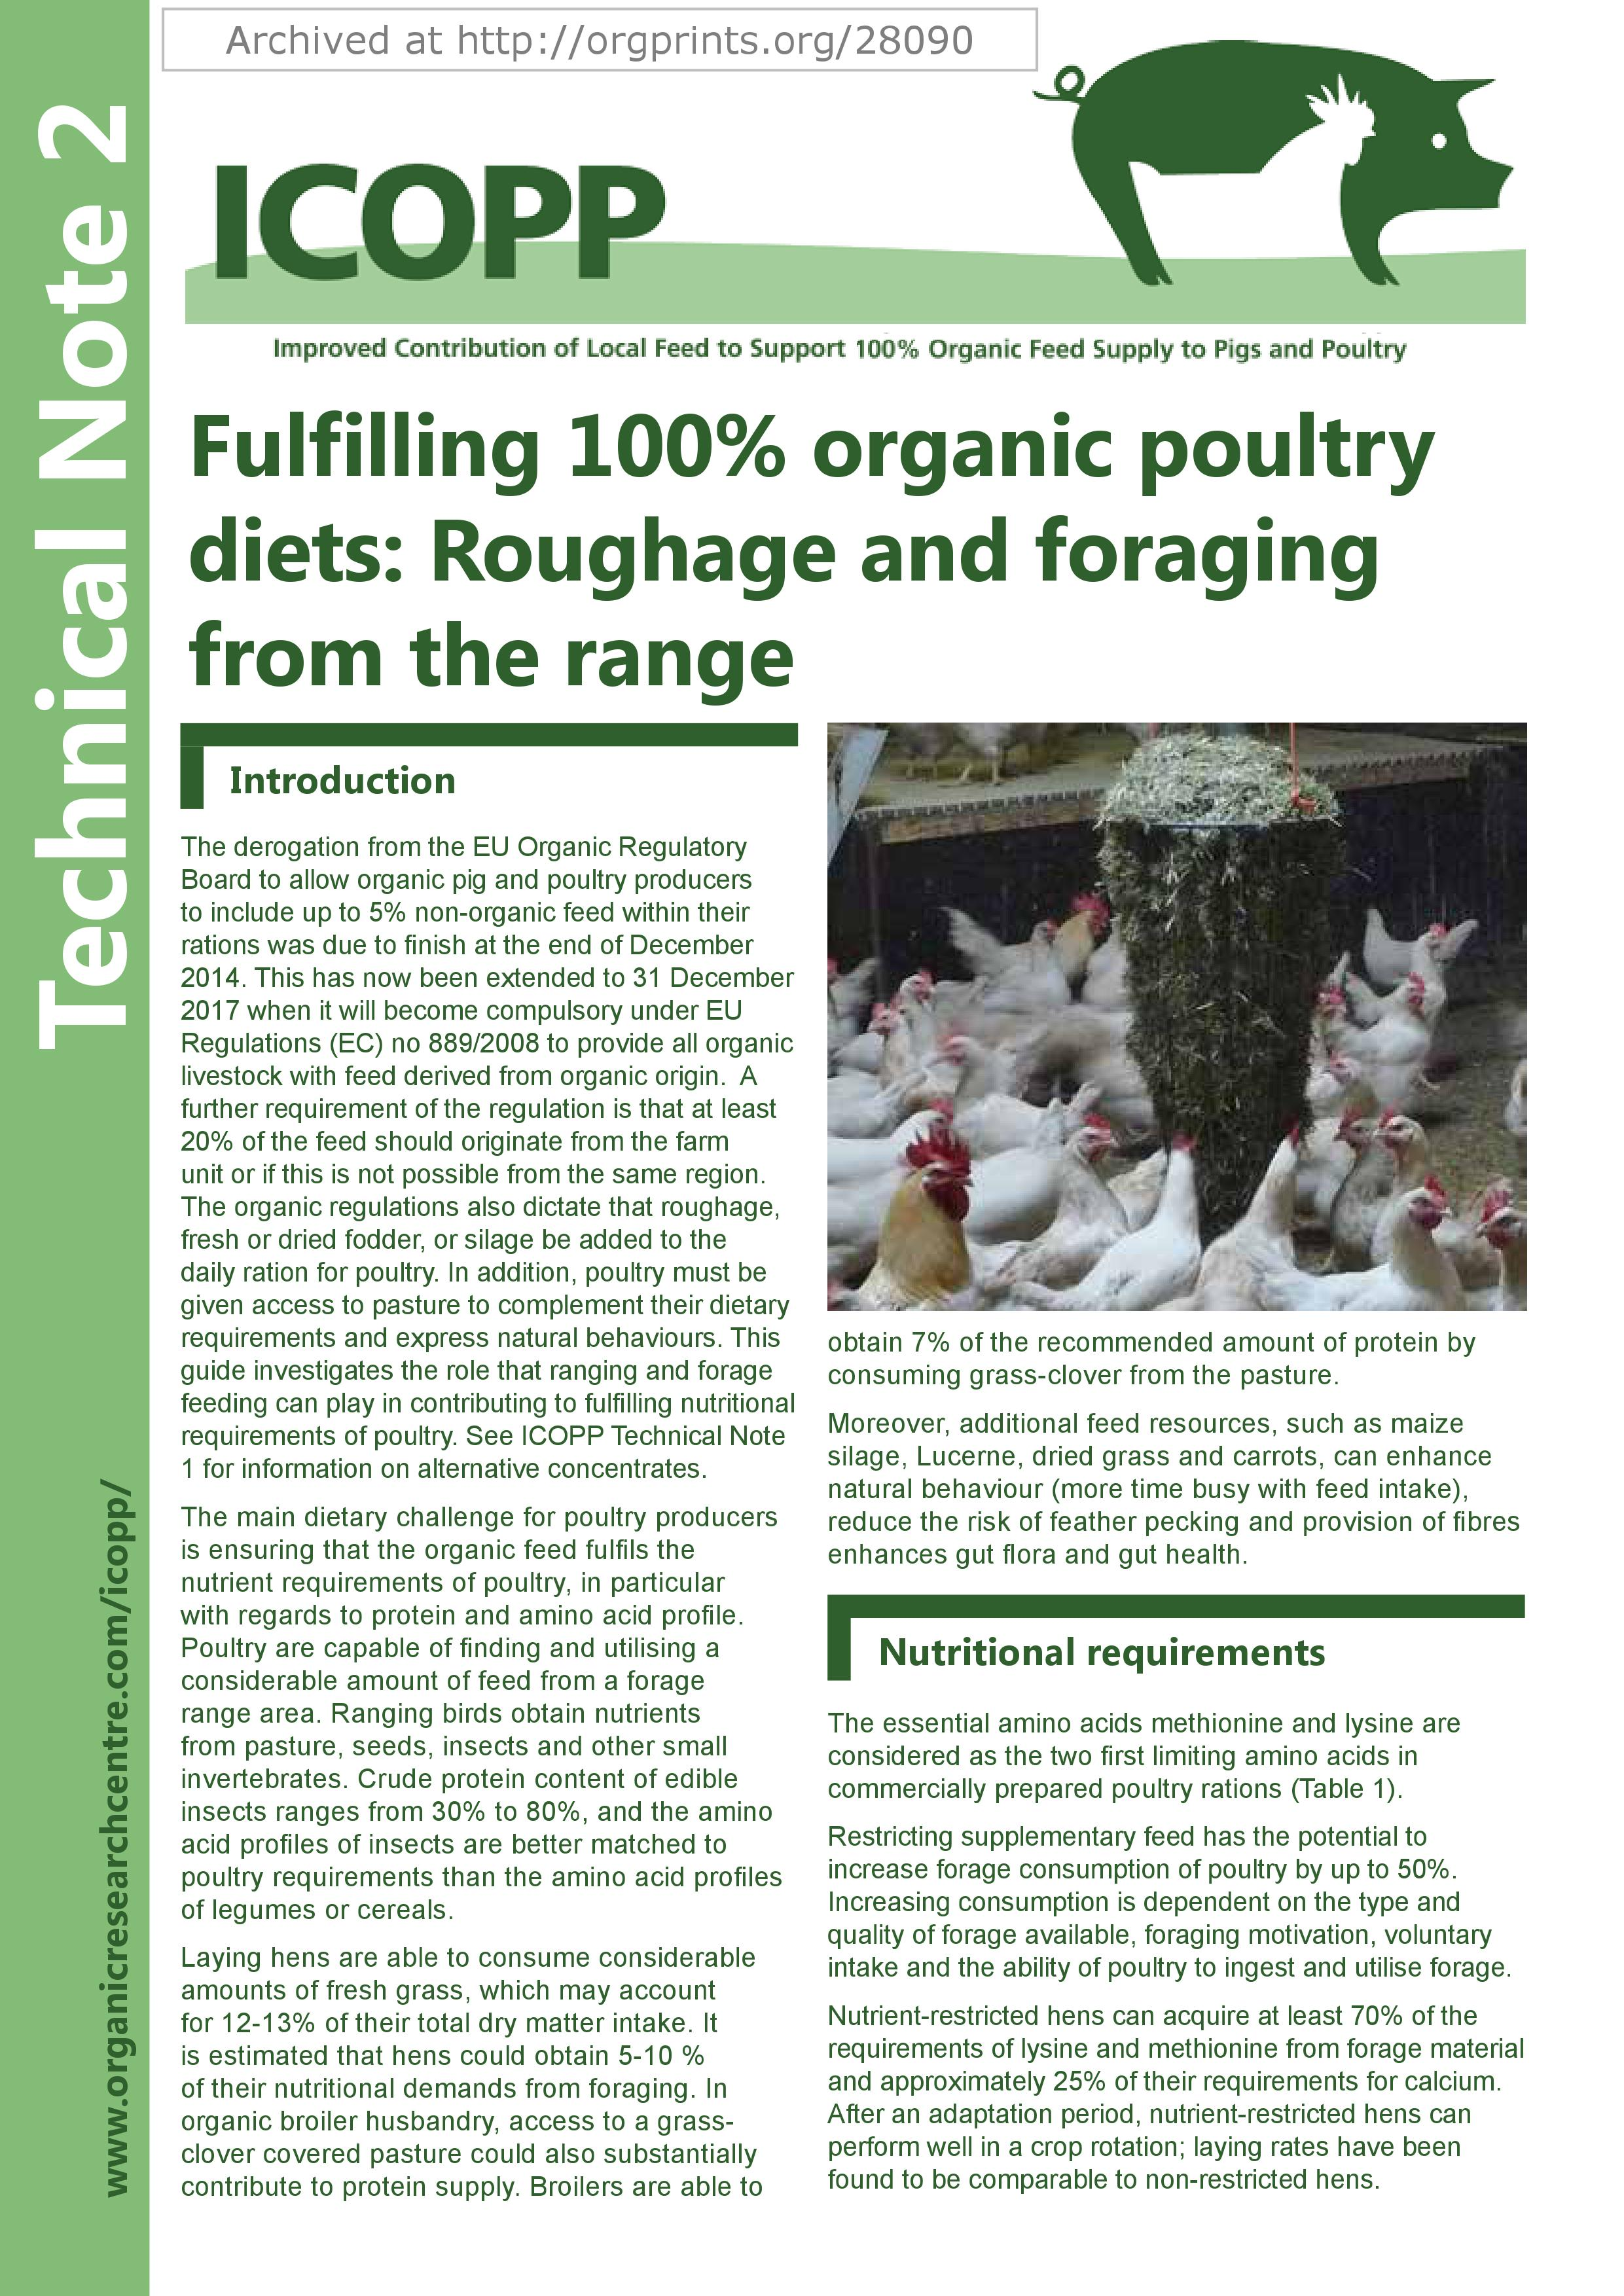 Fulfilling 100 % organic poultry diets: roughage and foraging from the range